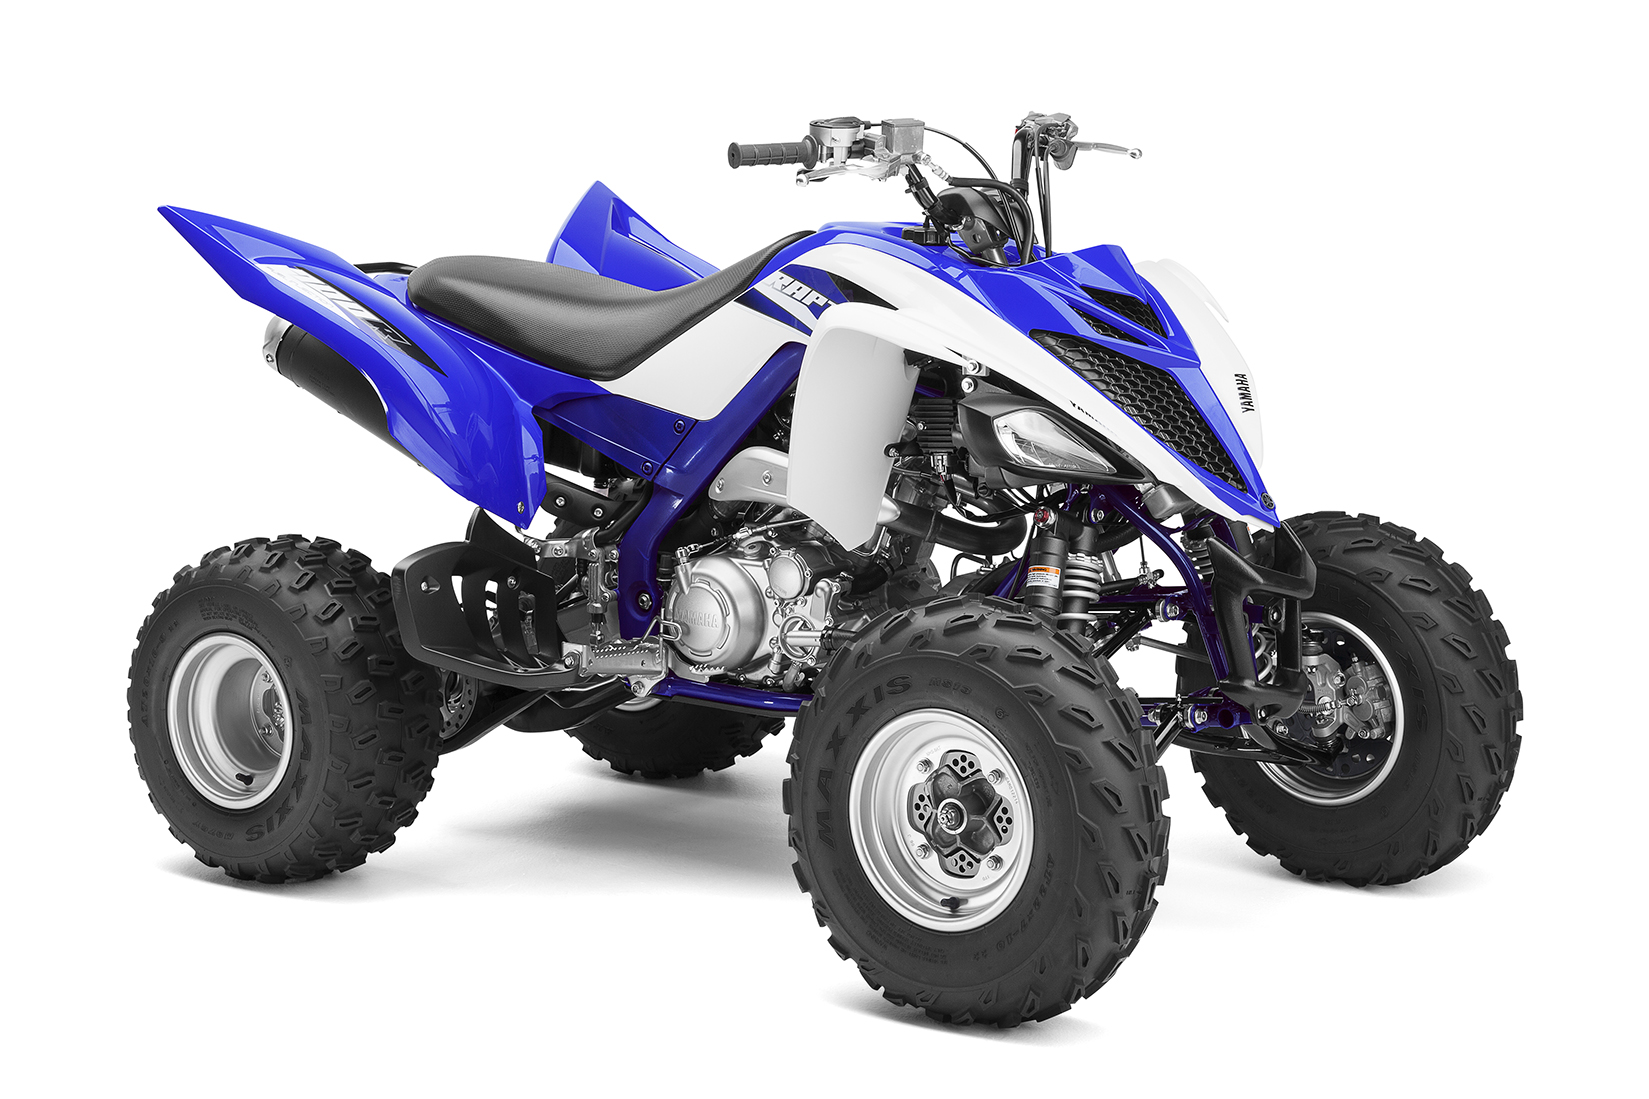 Suzuki King Quad 700 >> New 2015 700 Yamaha Raptor: Better suspension and increased power for the same price as last ...